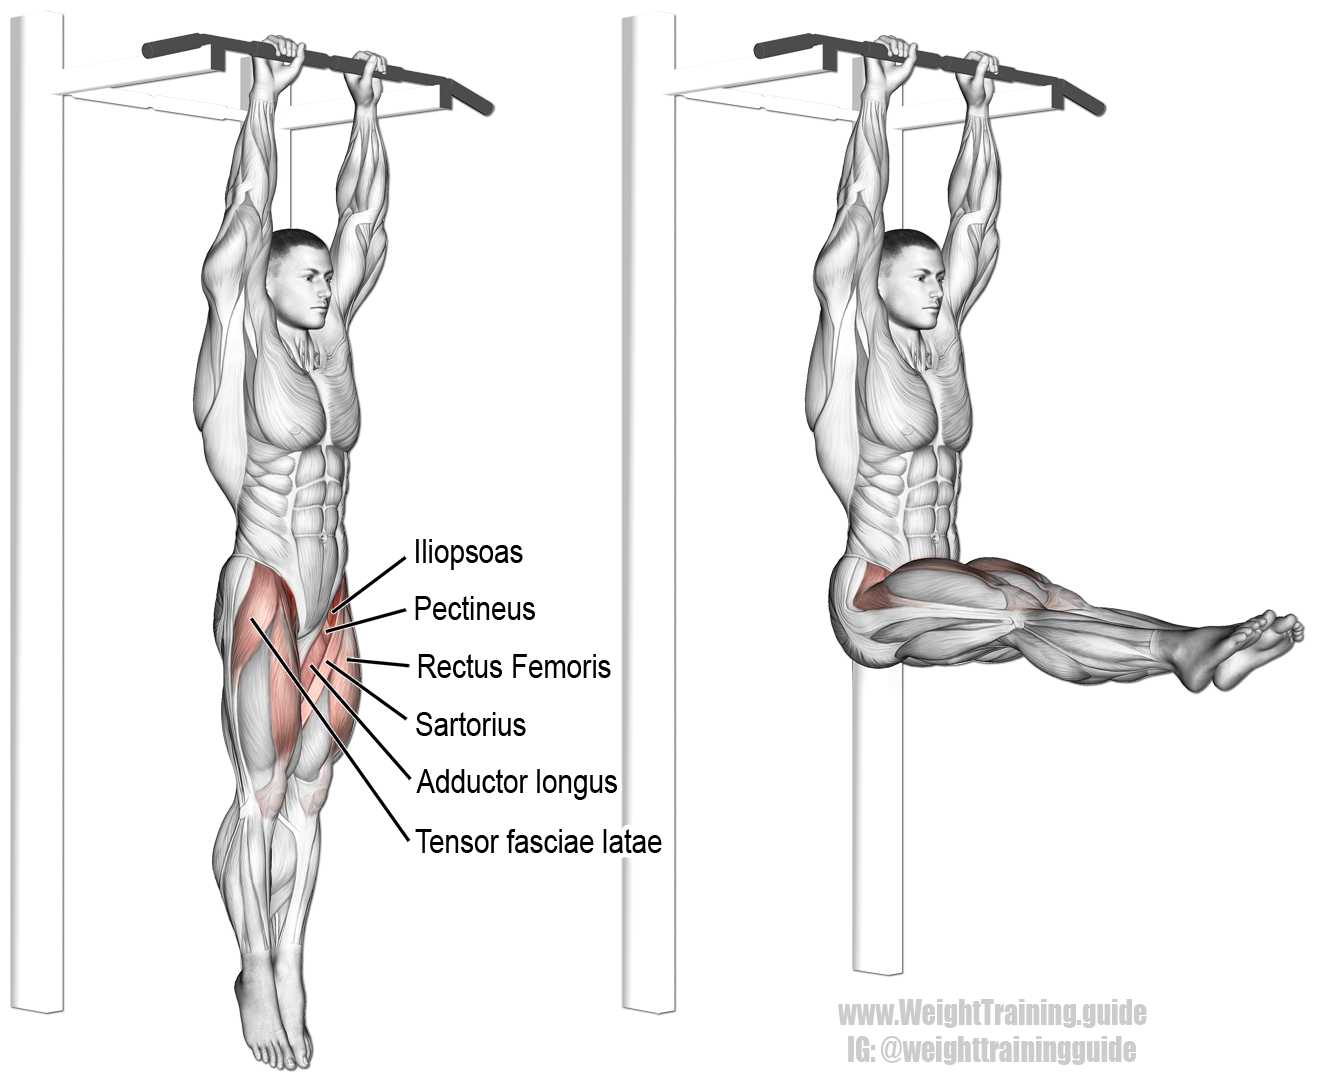 Captains chair leg raise muscles worked - Unlock Your Hip Flexors Hanging Straight Leg Raise Exercise Guide And Vide